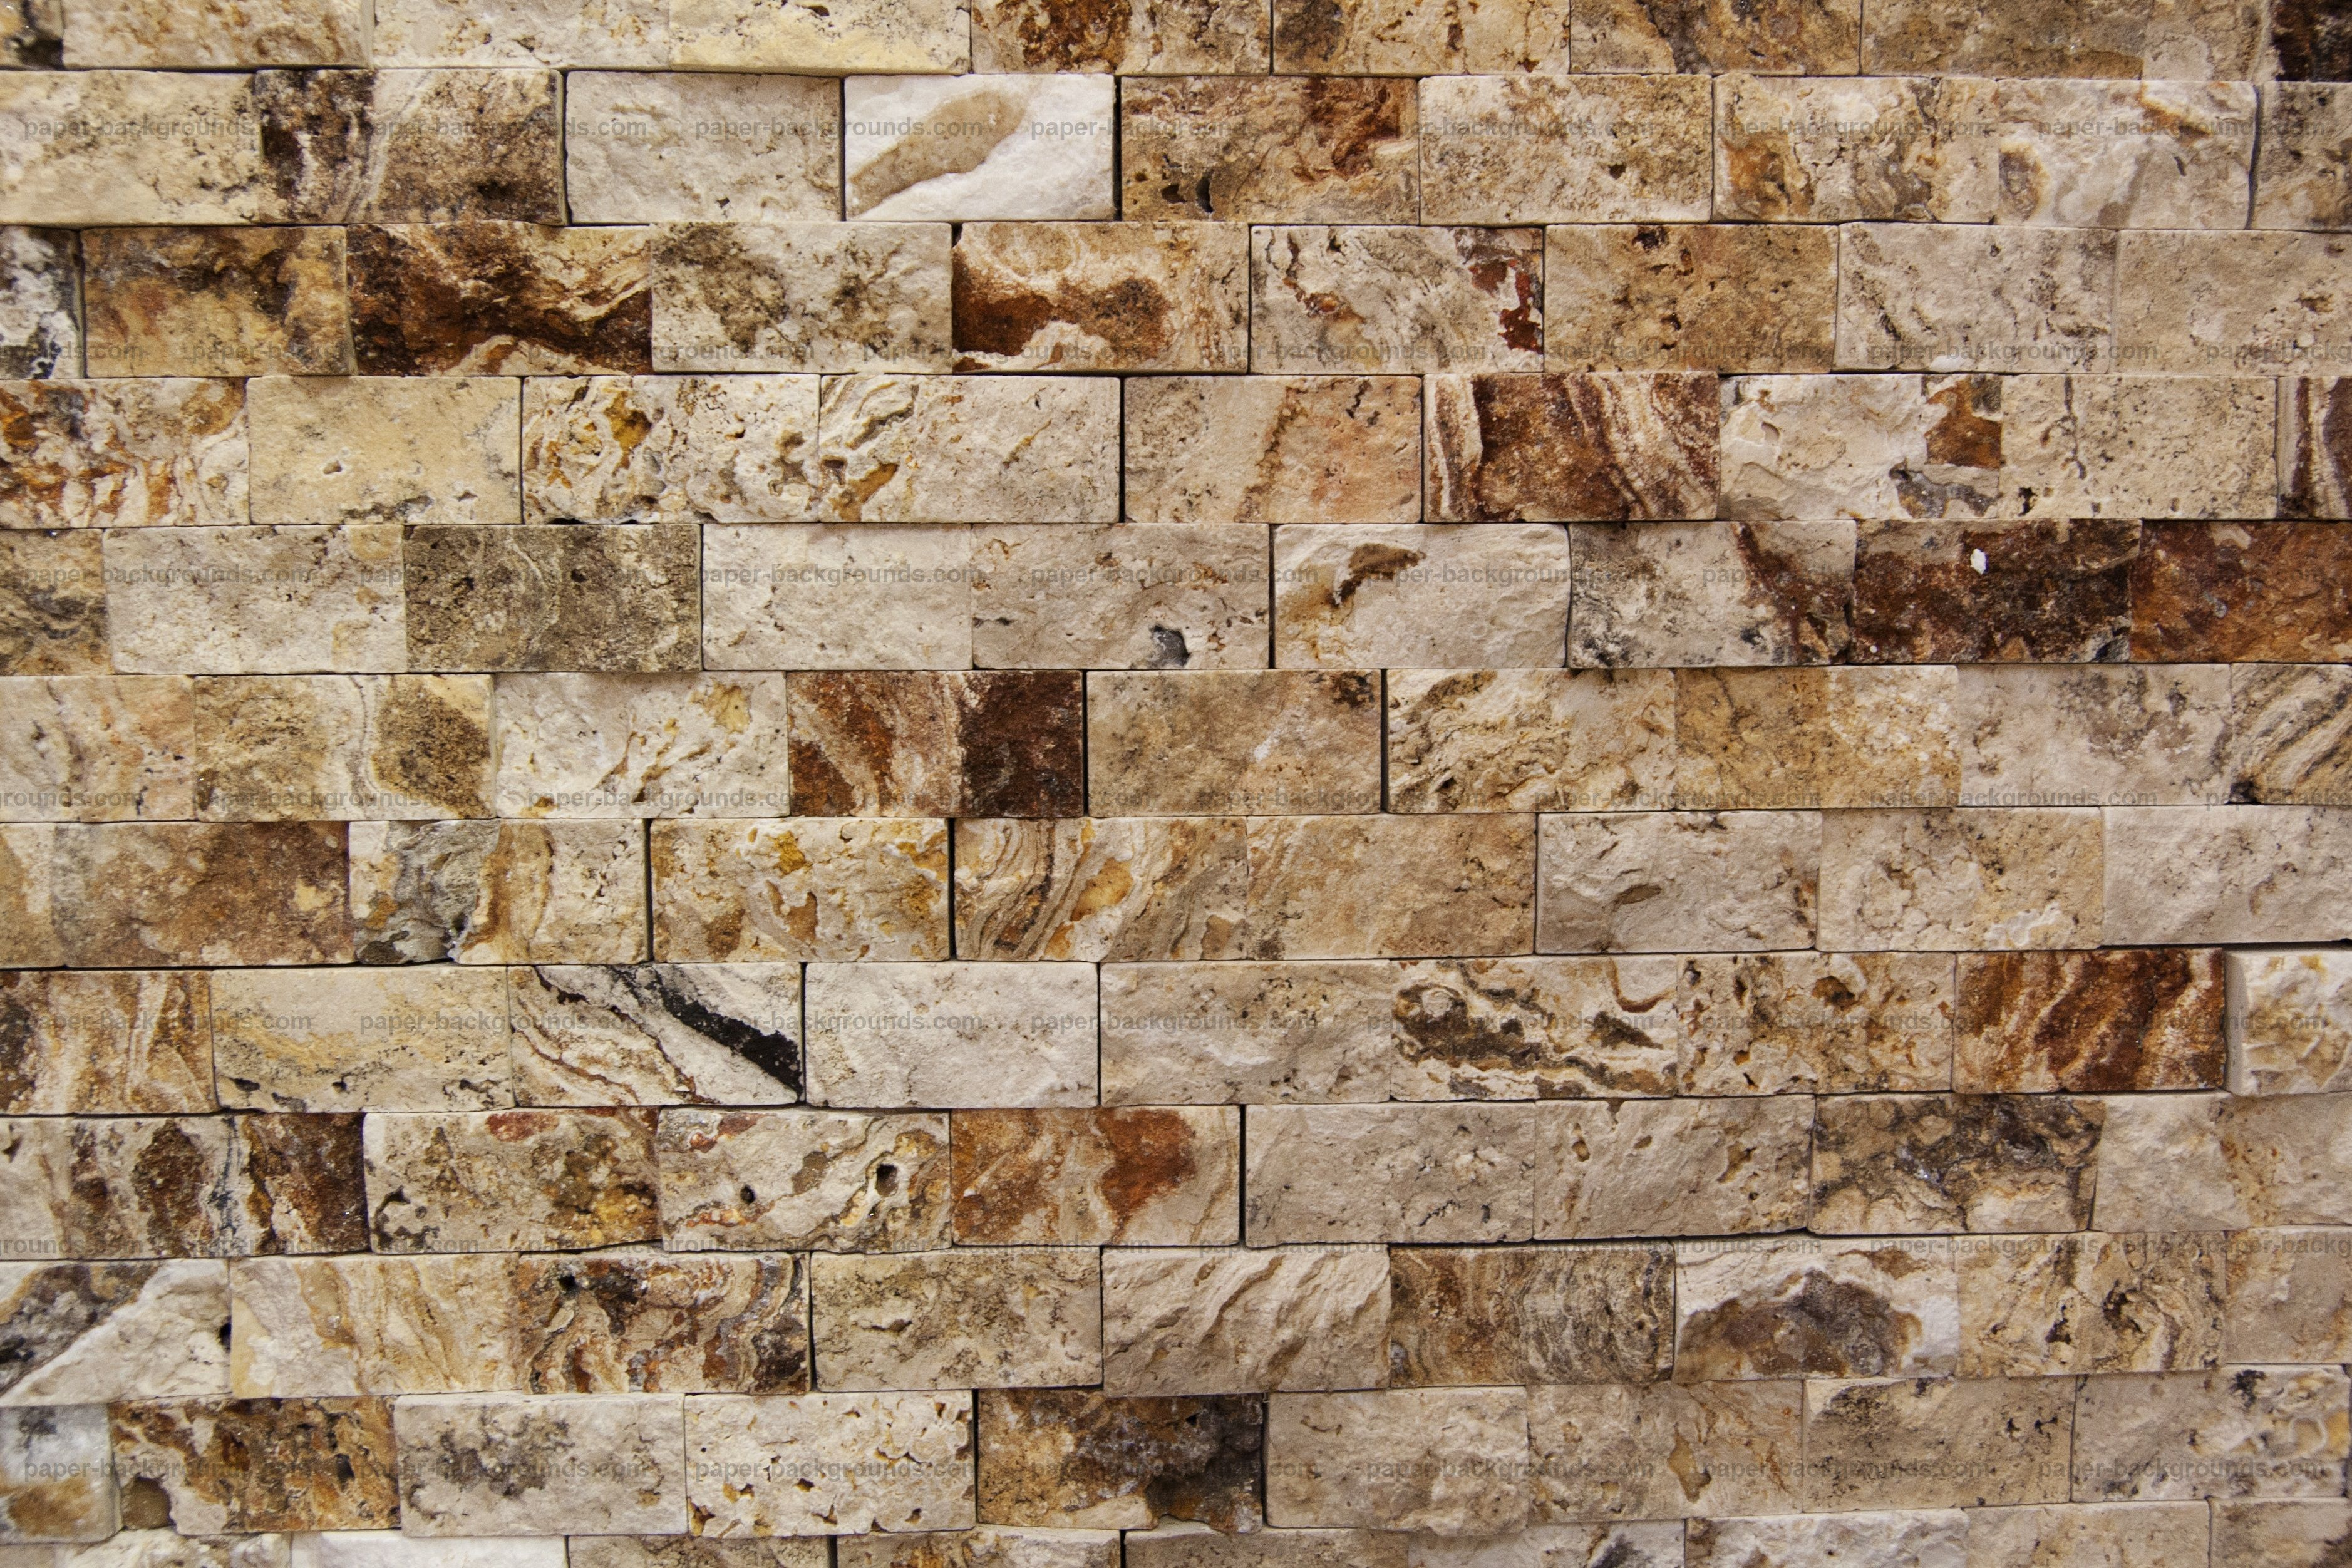 Rough Marble Brick Wall Texture High Resolution | PSD ...